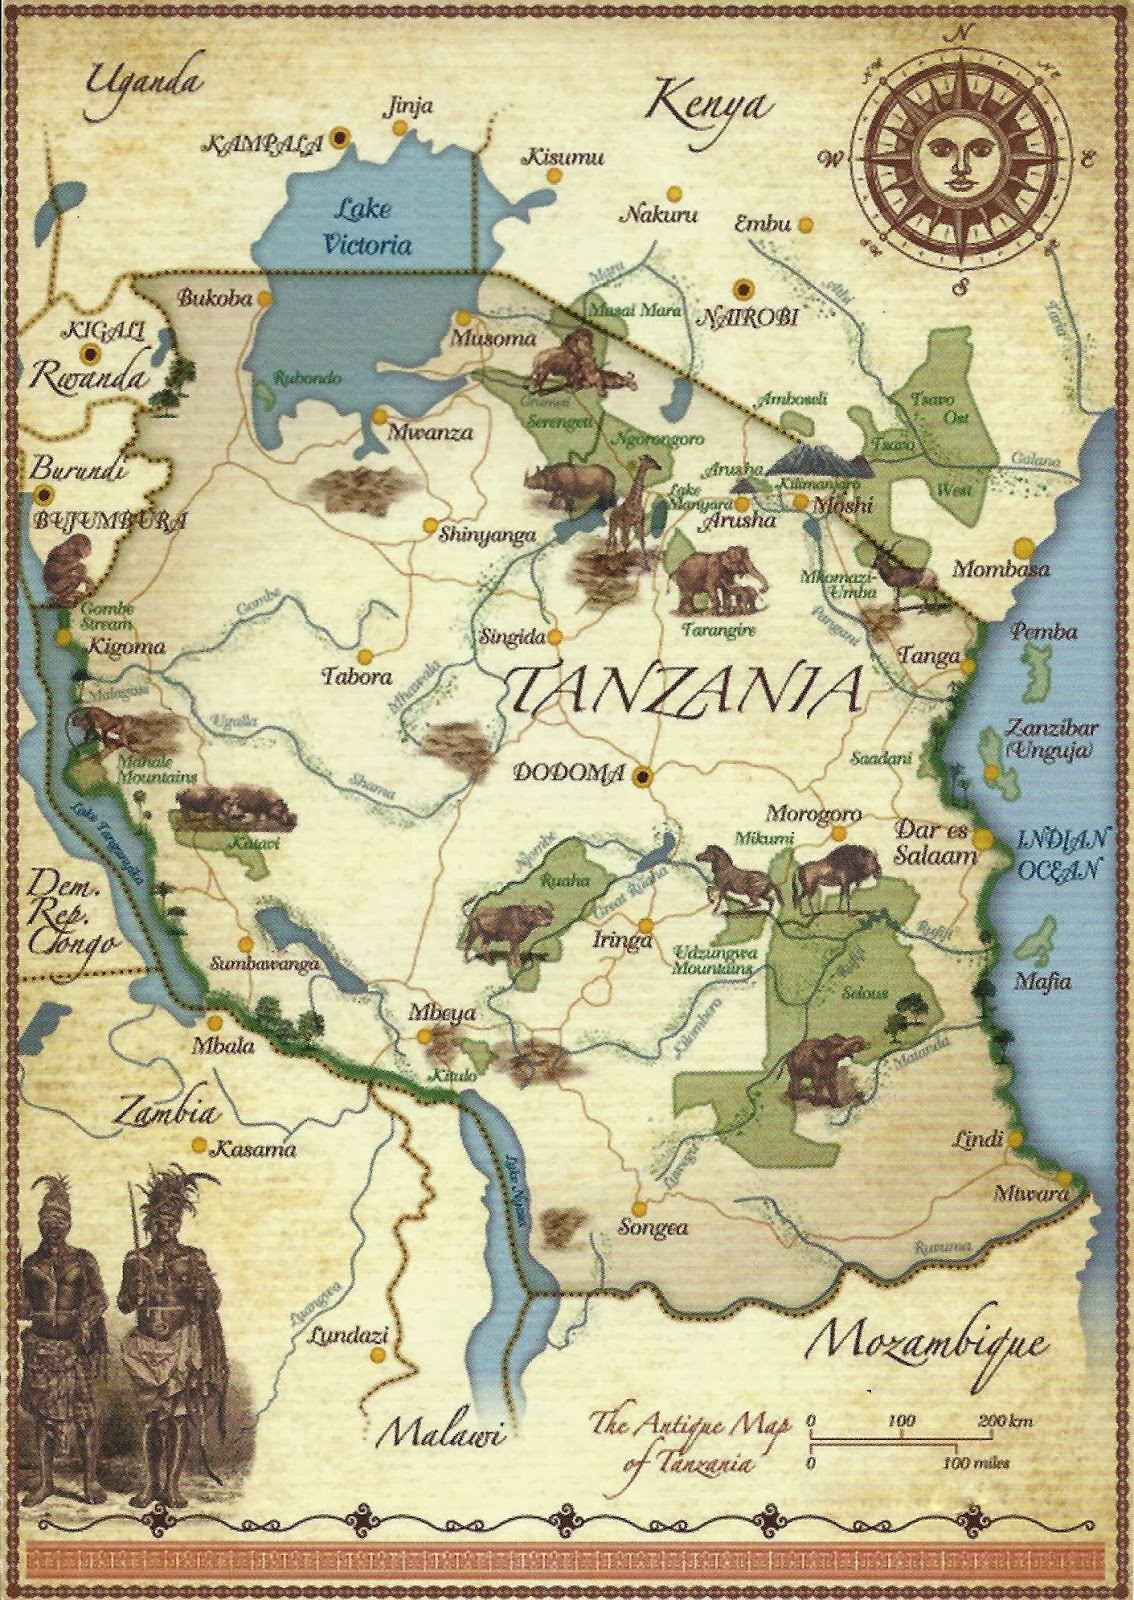 antique maps of africa with The Map Of Tanzania on CISUBAG moreover The Map Of Tanzania together with M2587 London Views Of Several Gates Of London besides Es 1262Islandiacln besides 1947CIND.